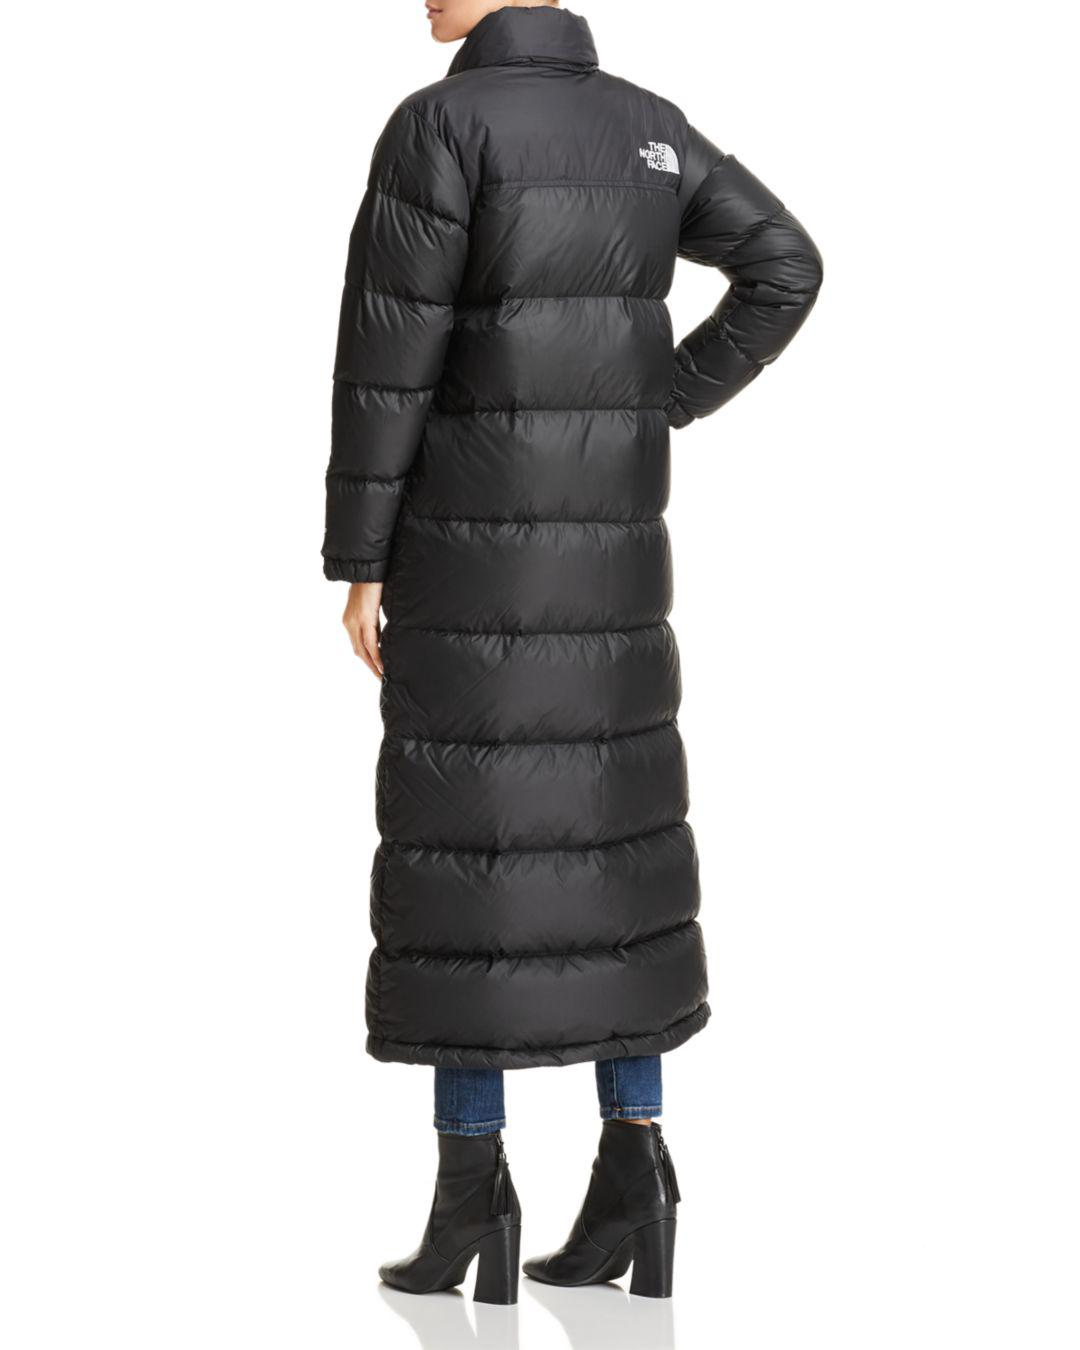 Lyst - The North Face Nuptse Duster Down Jacket in Black c232d6111